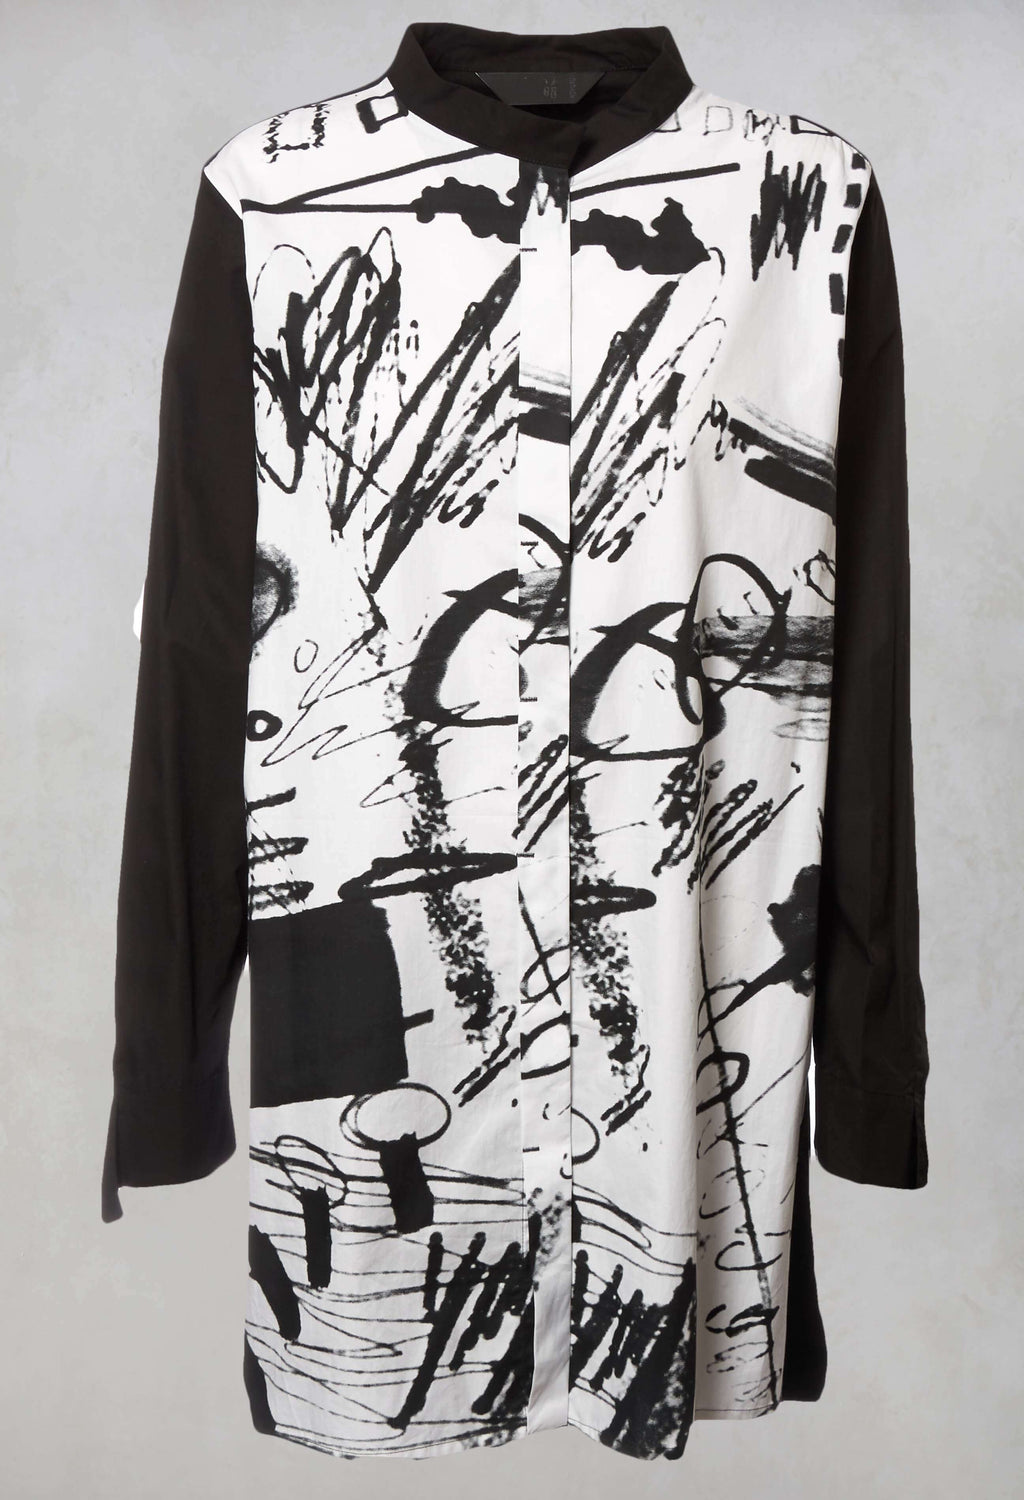 Printed Shirt in Black / White